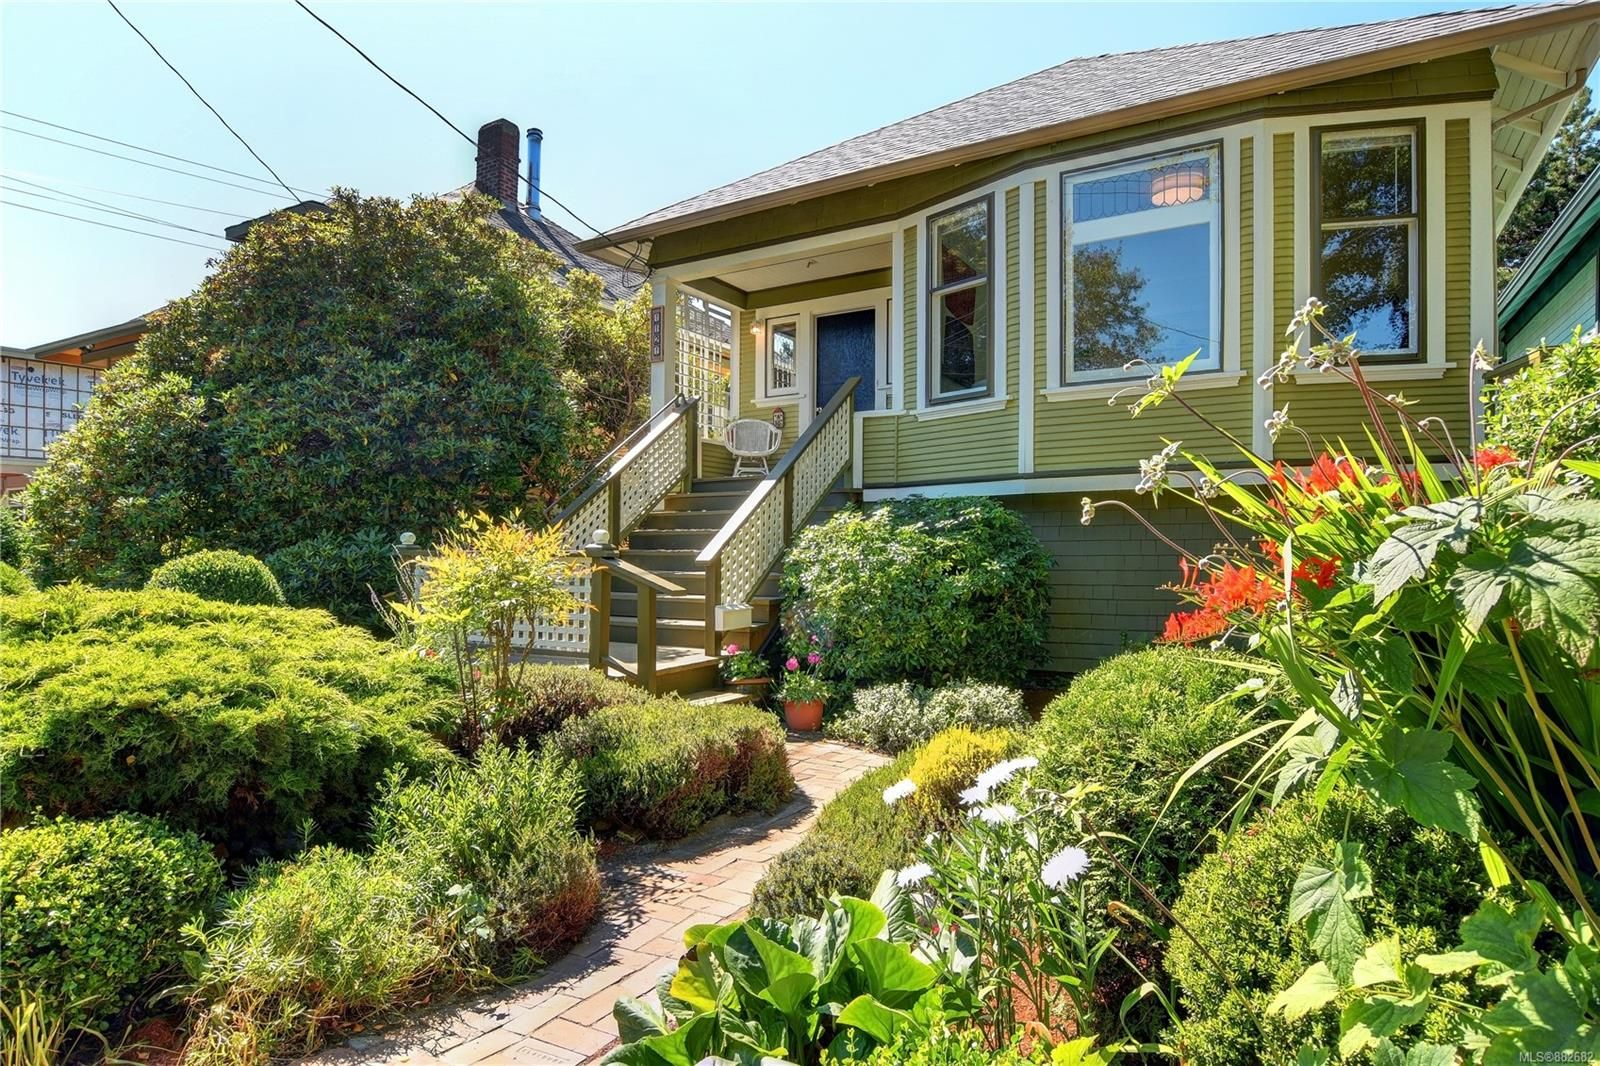 Main Photo: 1121 Chapman St in : Vi Fairfield West House for sale (Victoria)  : MLS®# 882682